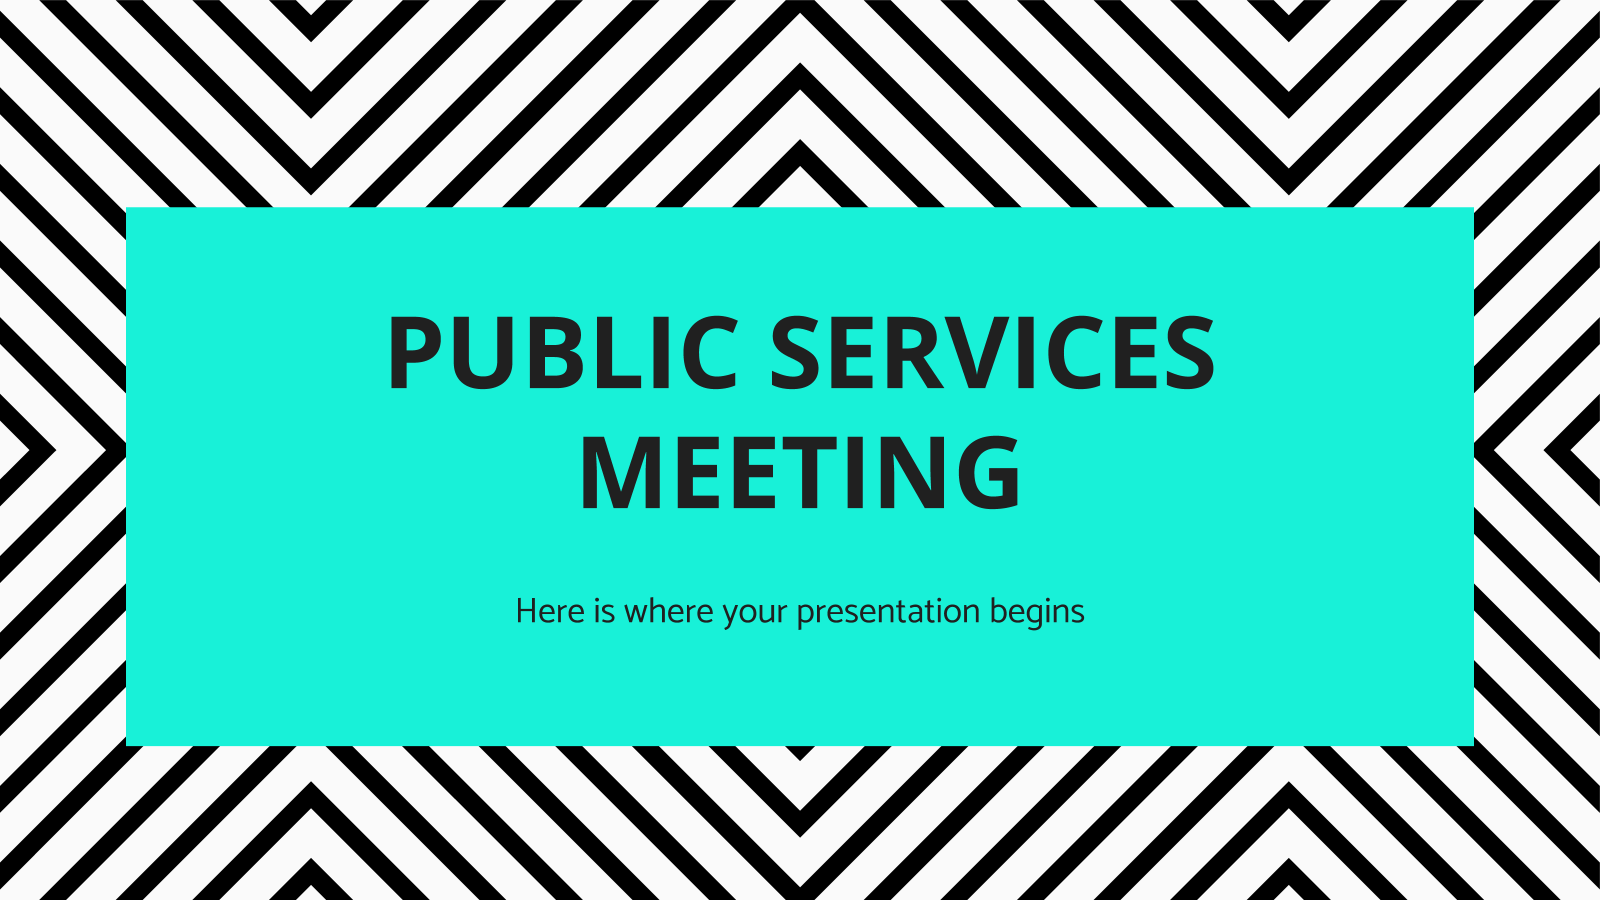 Public Services Meeting presentation template